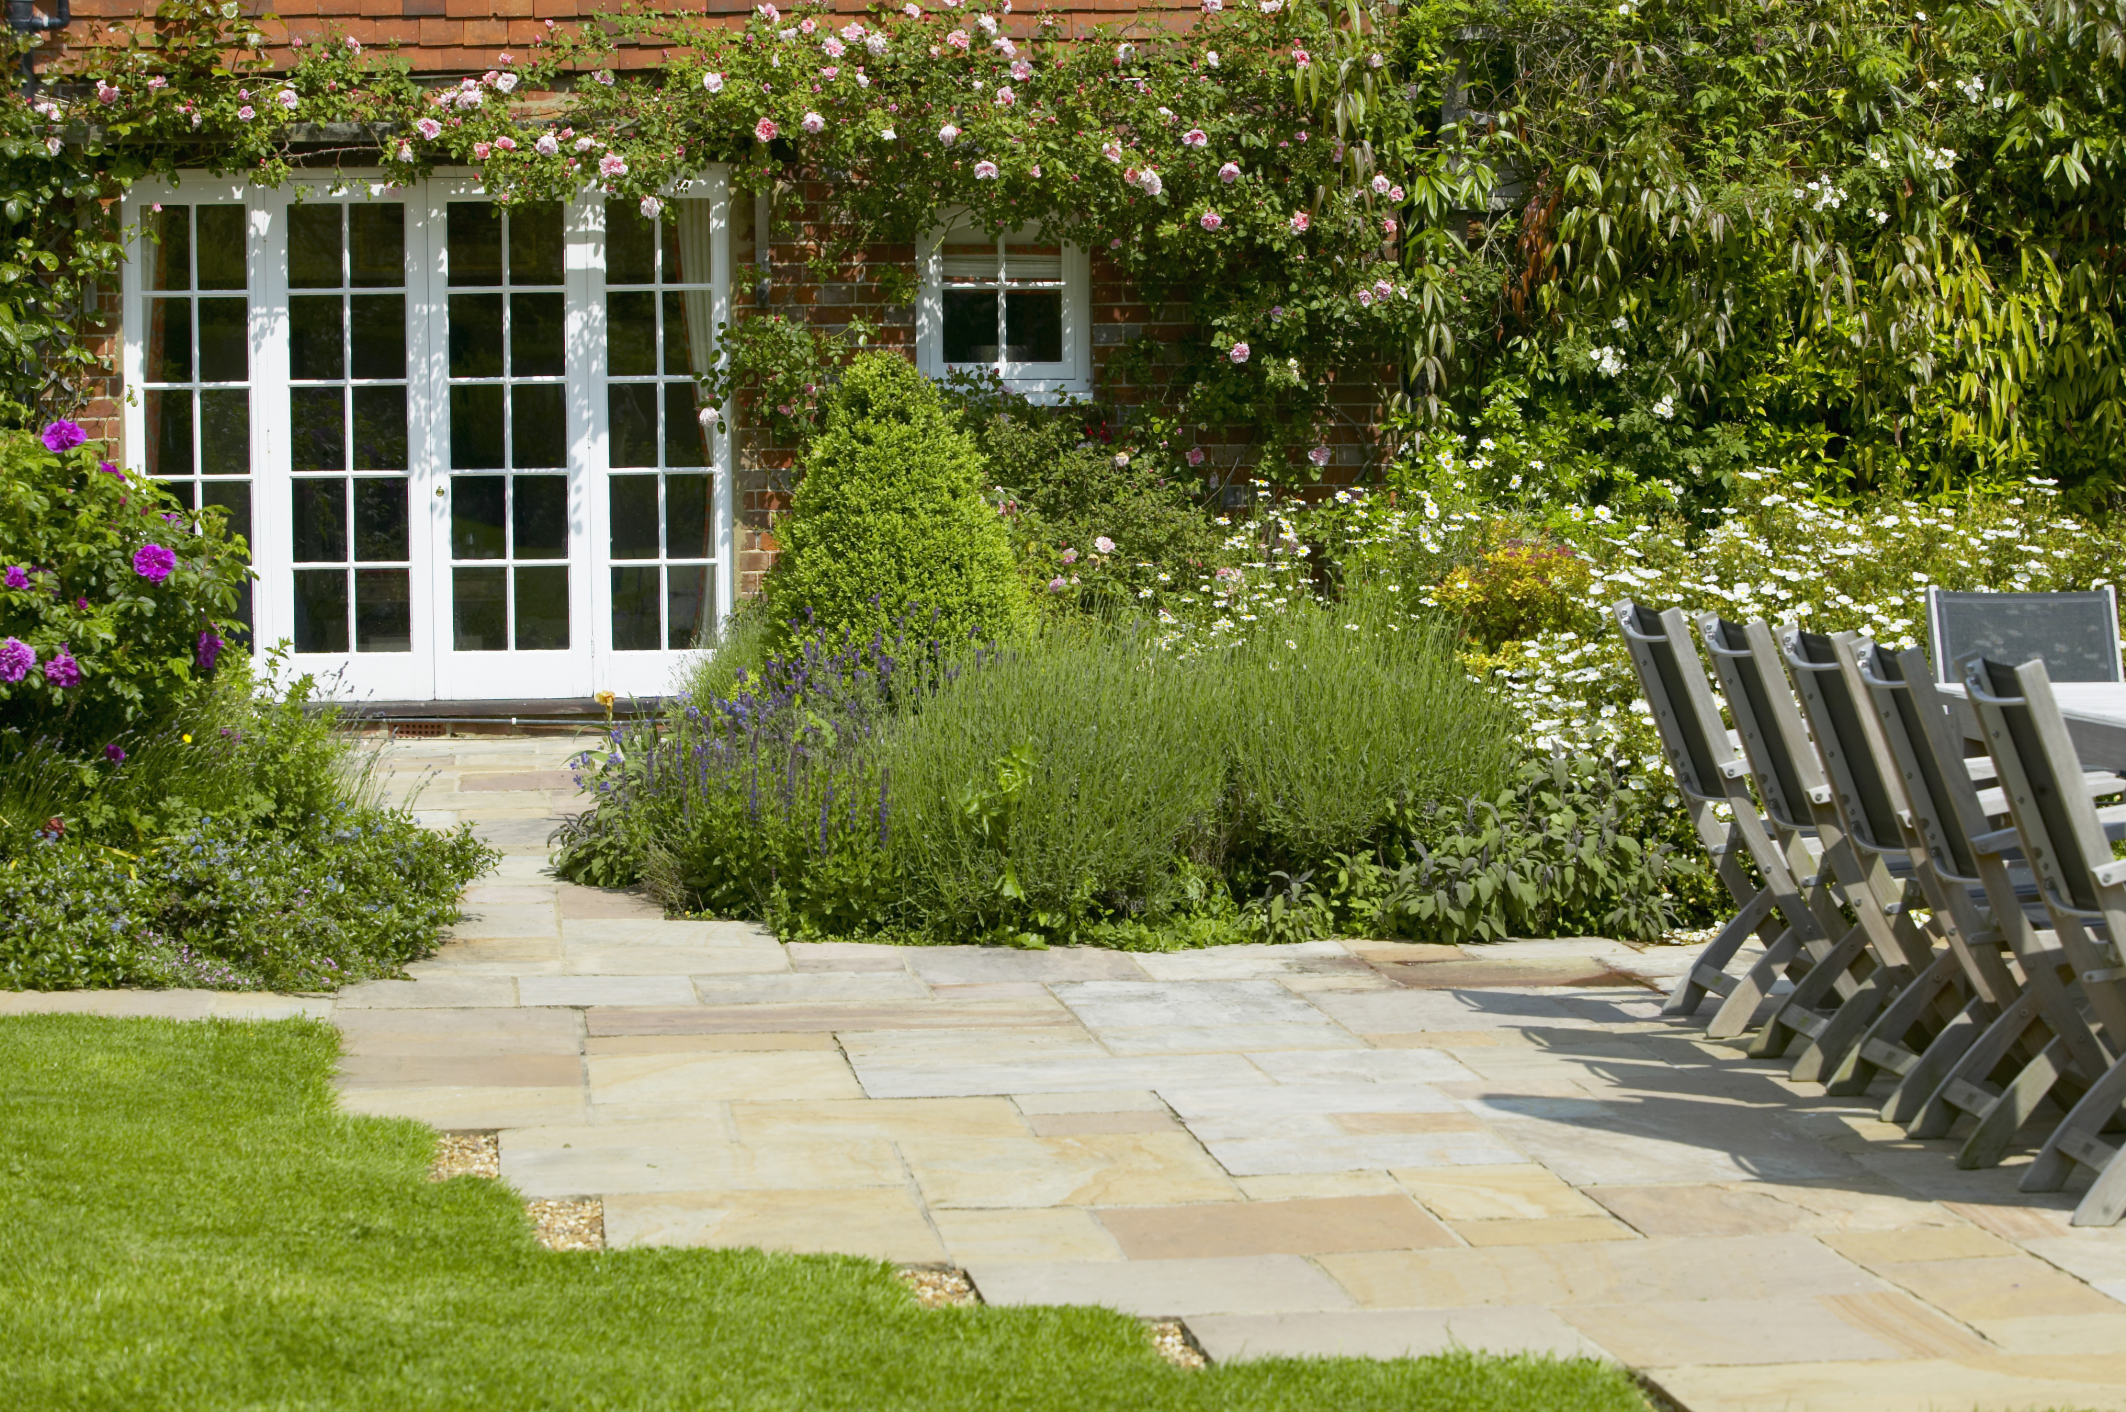 17 Low Maintenance Landscaping Ideas - Chris and Peyton ... on Back Garden Ideas id=43546